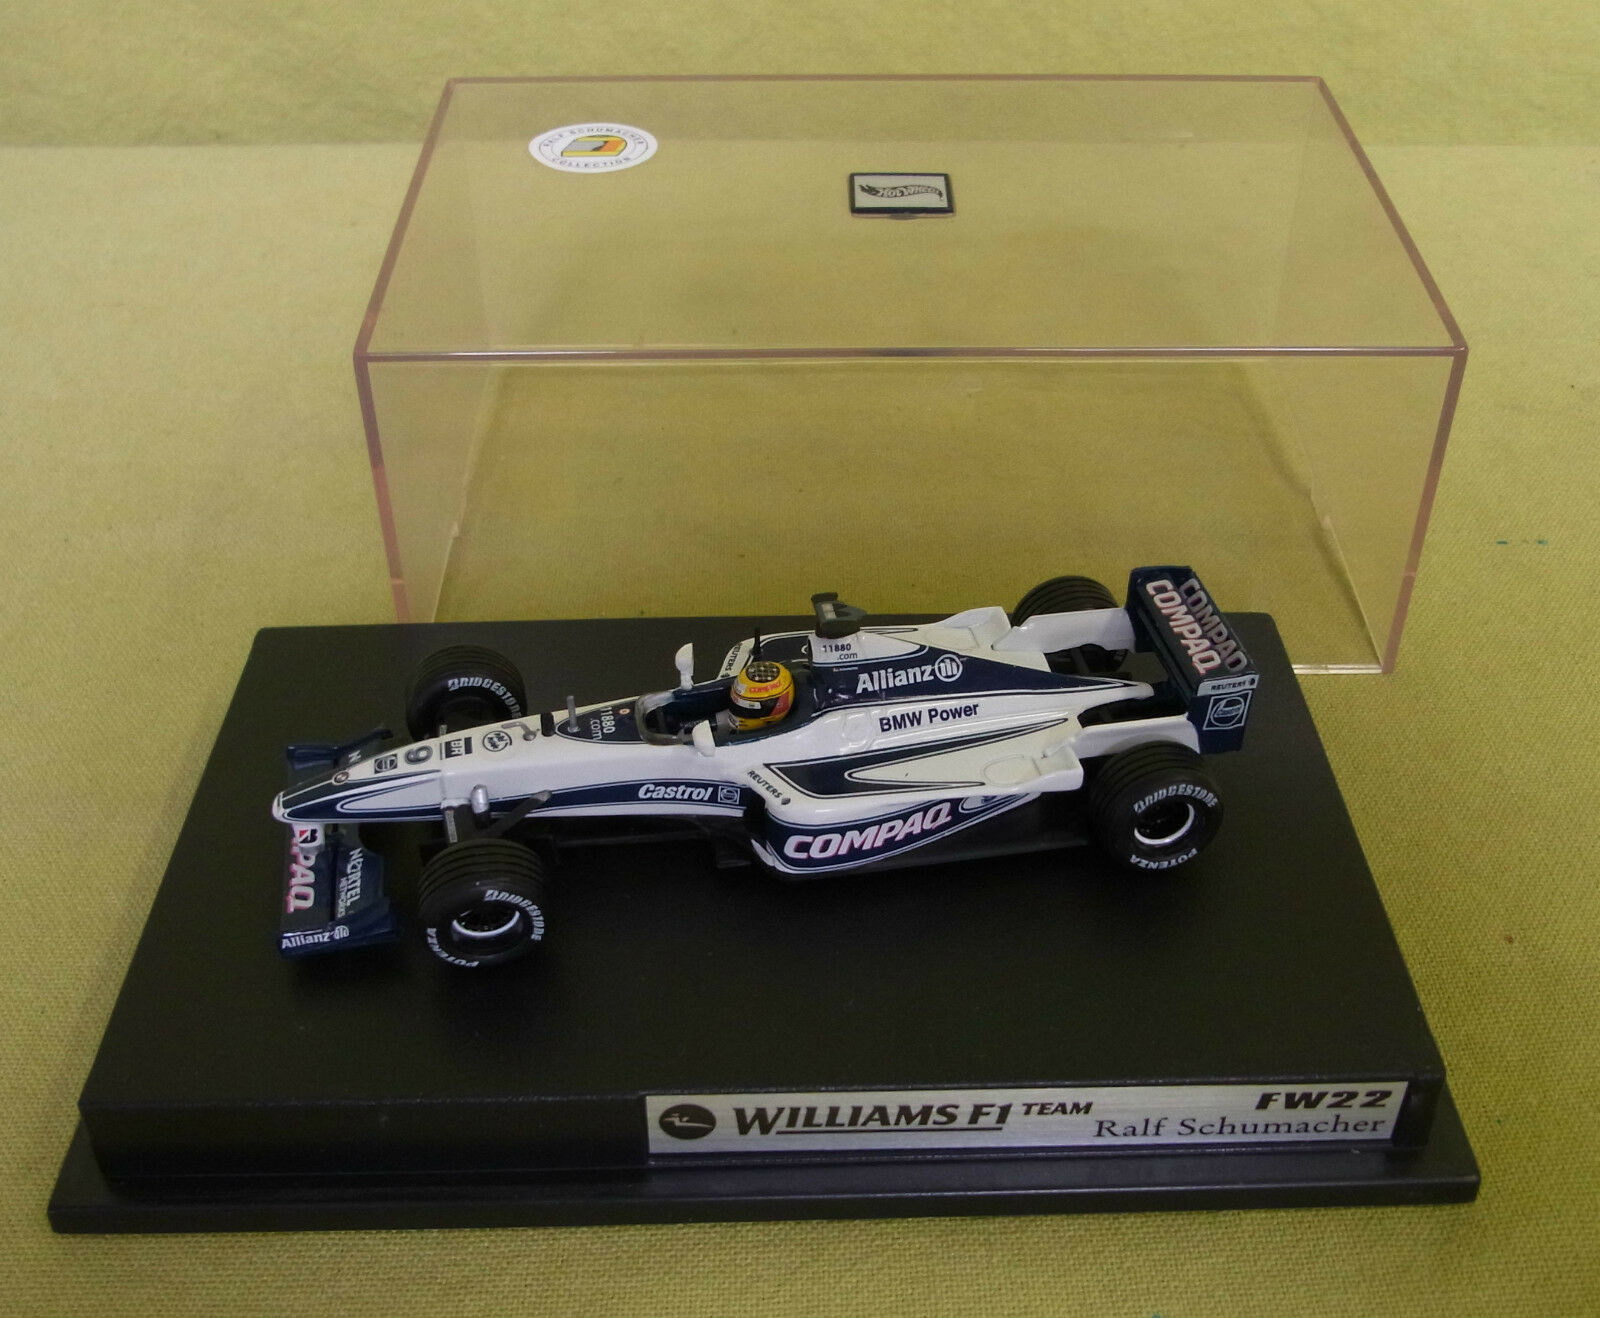 Hot Wheels - R. Schumacher Collection Collection Collection - Williams F1 Team FW22 - R. Schumacher be5a3c